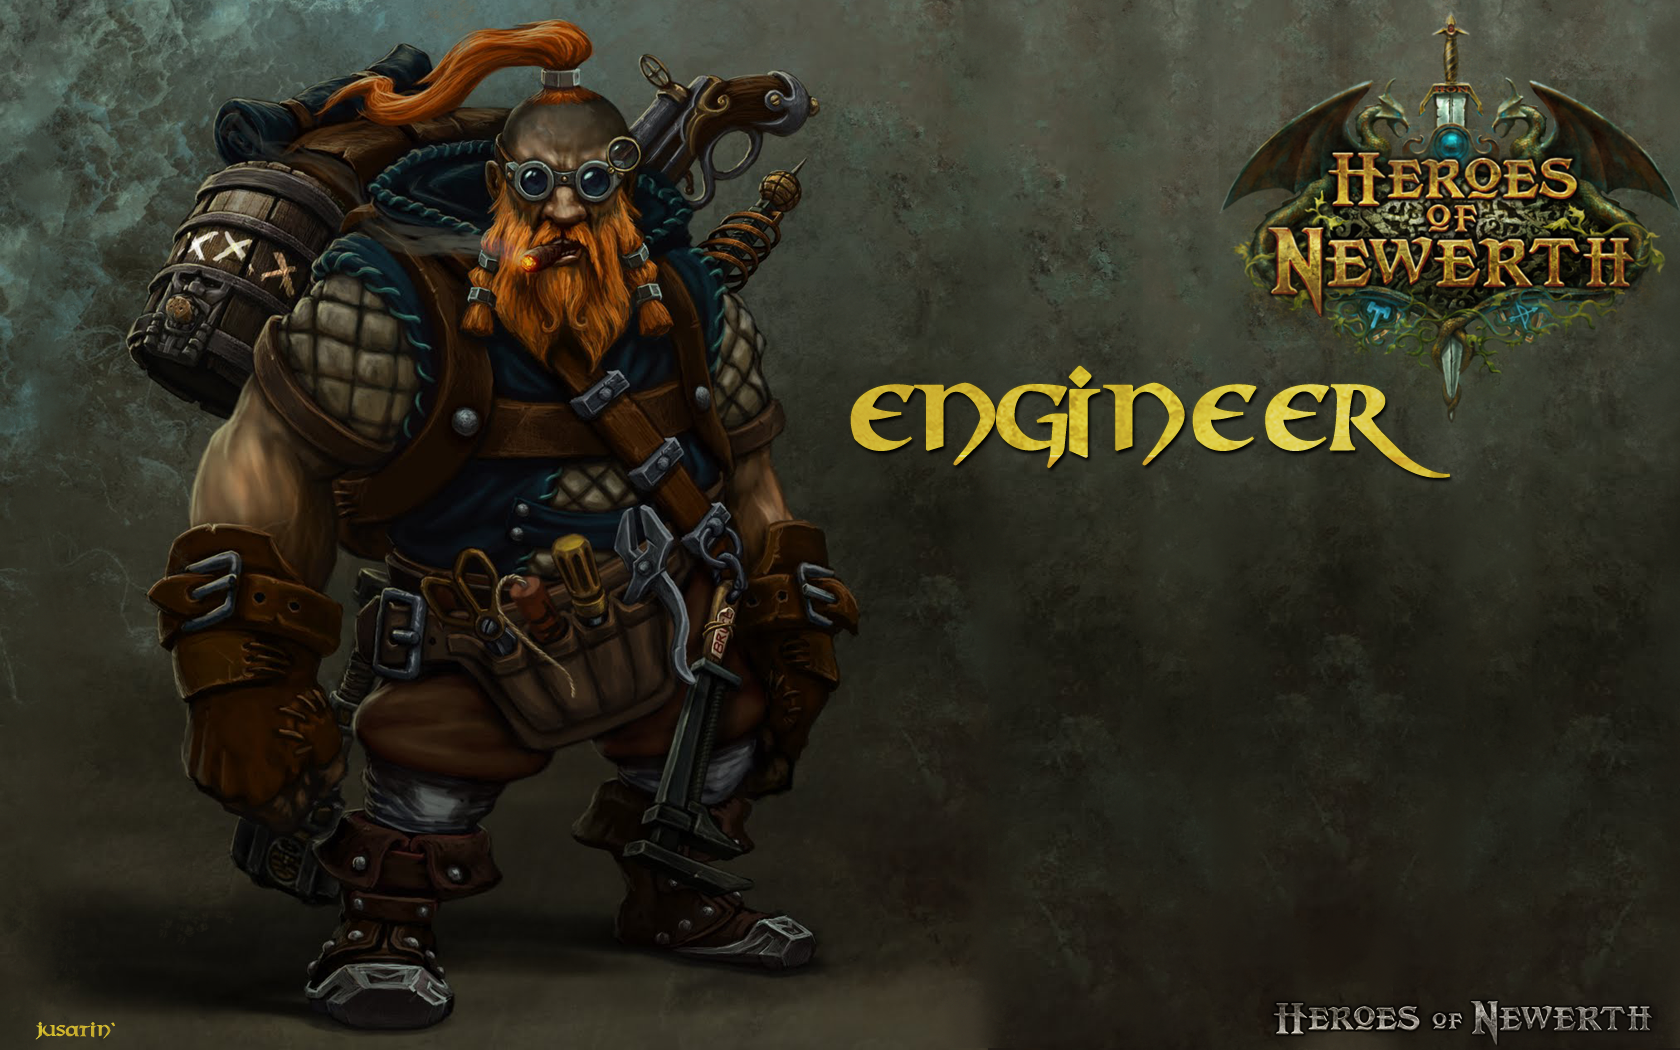 Imagenes de Heroes of Newerth